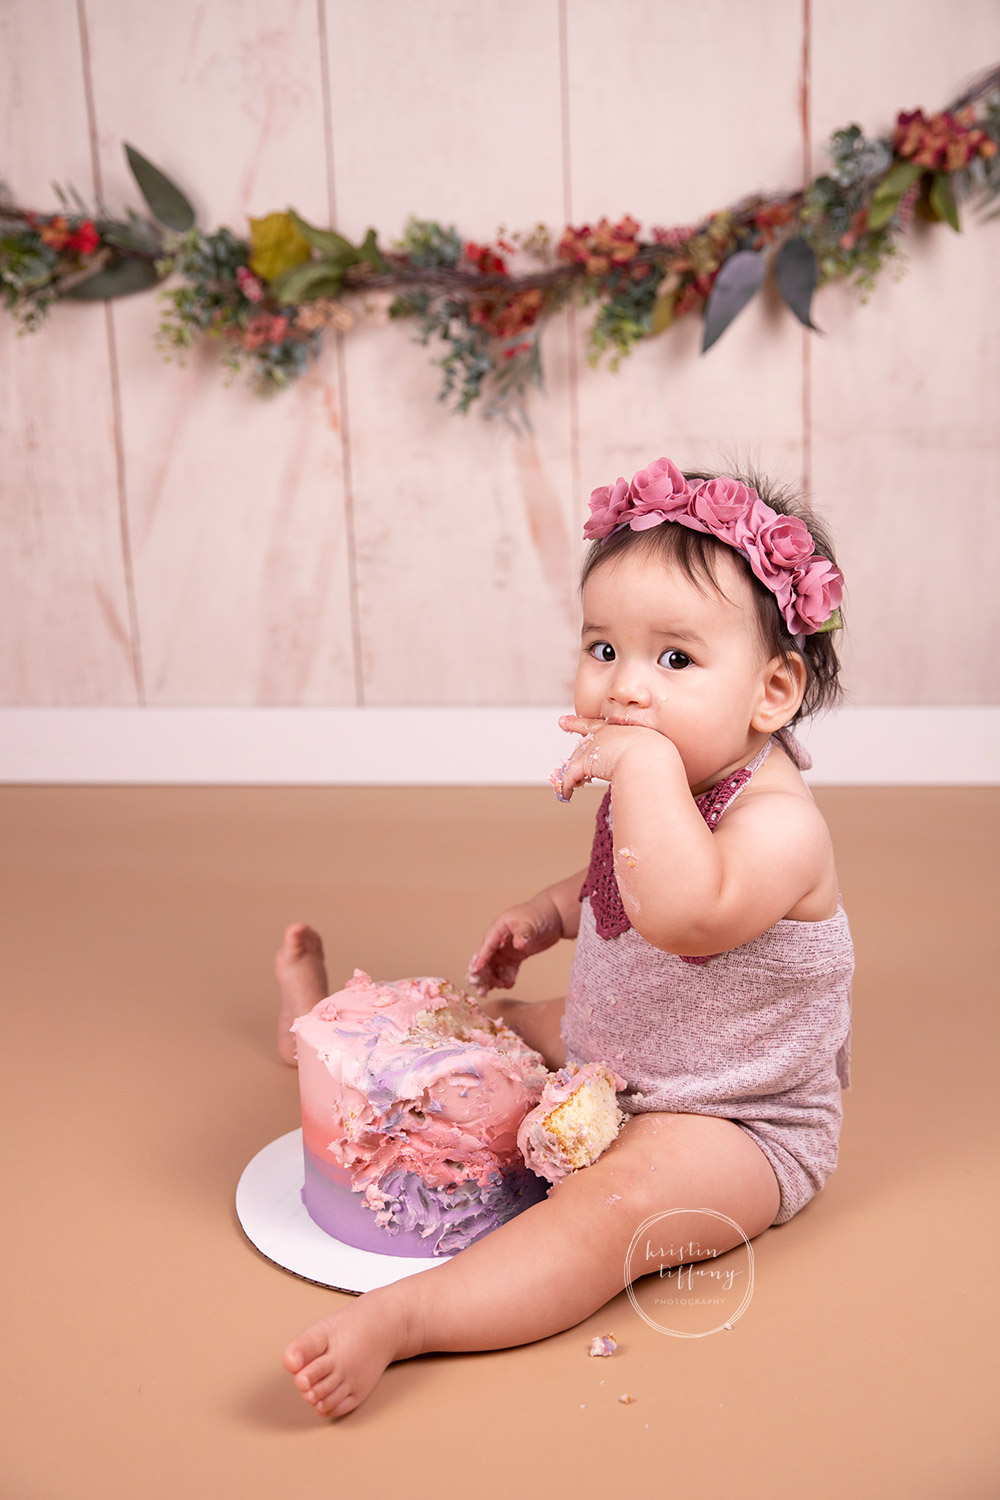 a photo of a baby girl at a cake smash photo session